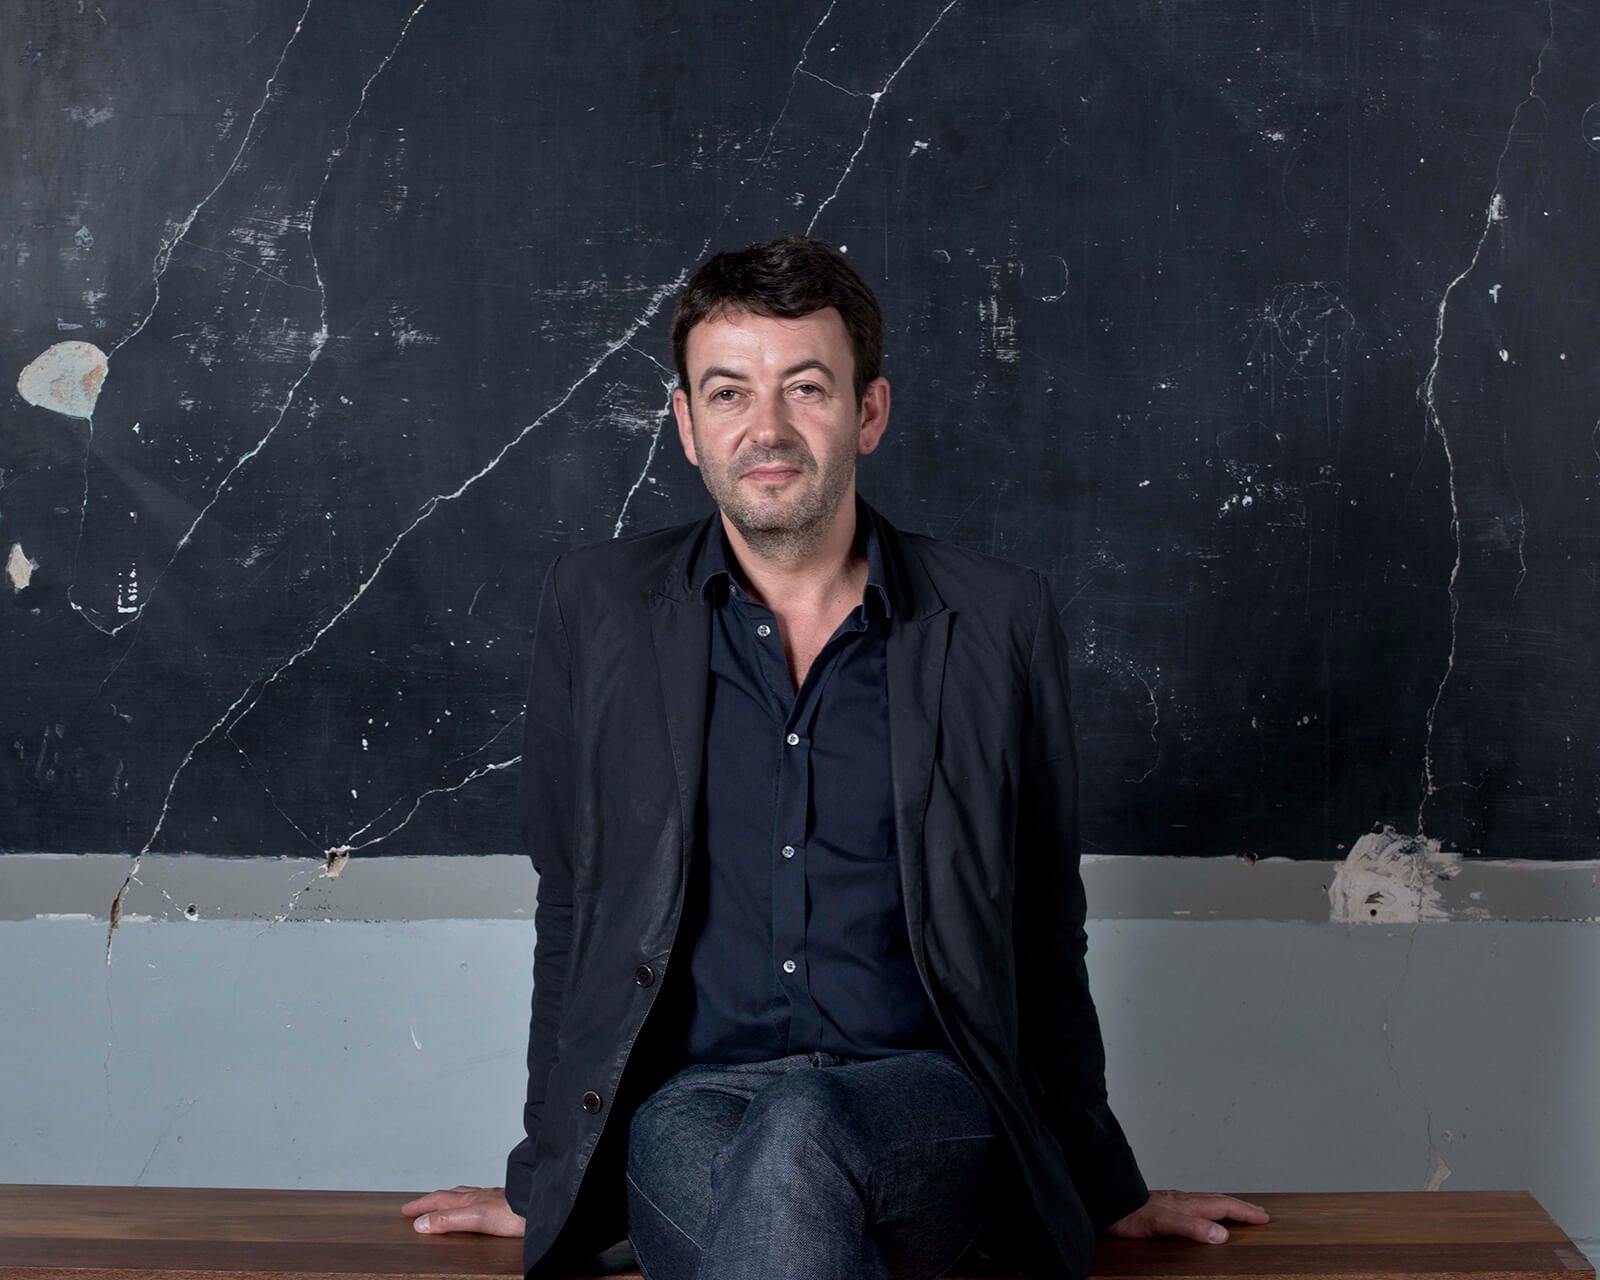 Eric Lápierre, chief-curator of the 5th edition os Lisbon Architecture Triennale and curator of the exhibition Economy of Means